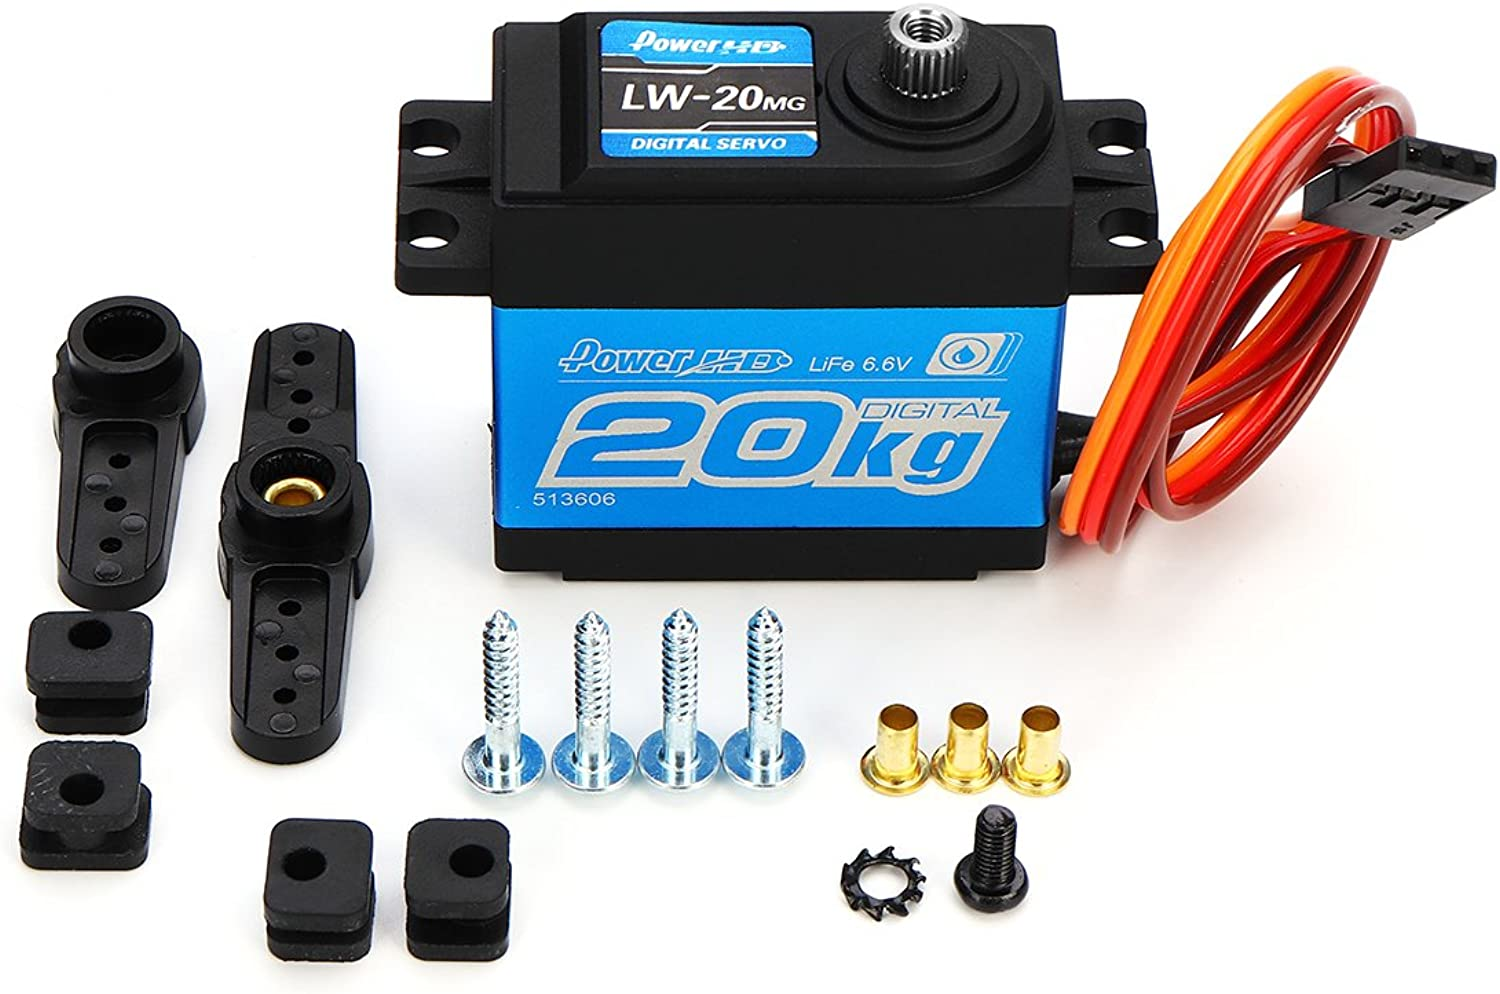 KINGDUO Power Hd Lw-20Mg Wasserdicht High-Torque Metal Teeth Digital Servo Für Smart Robot Car & Robot